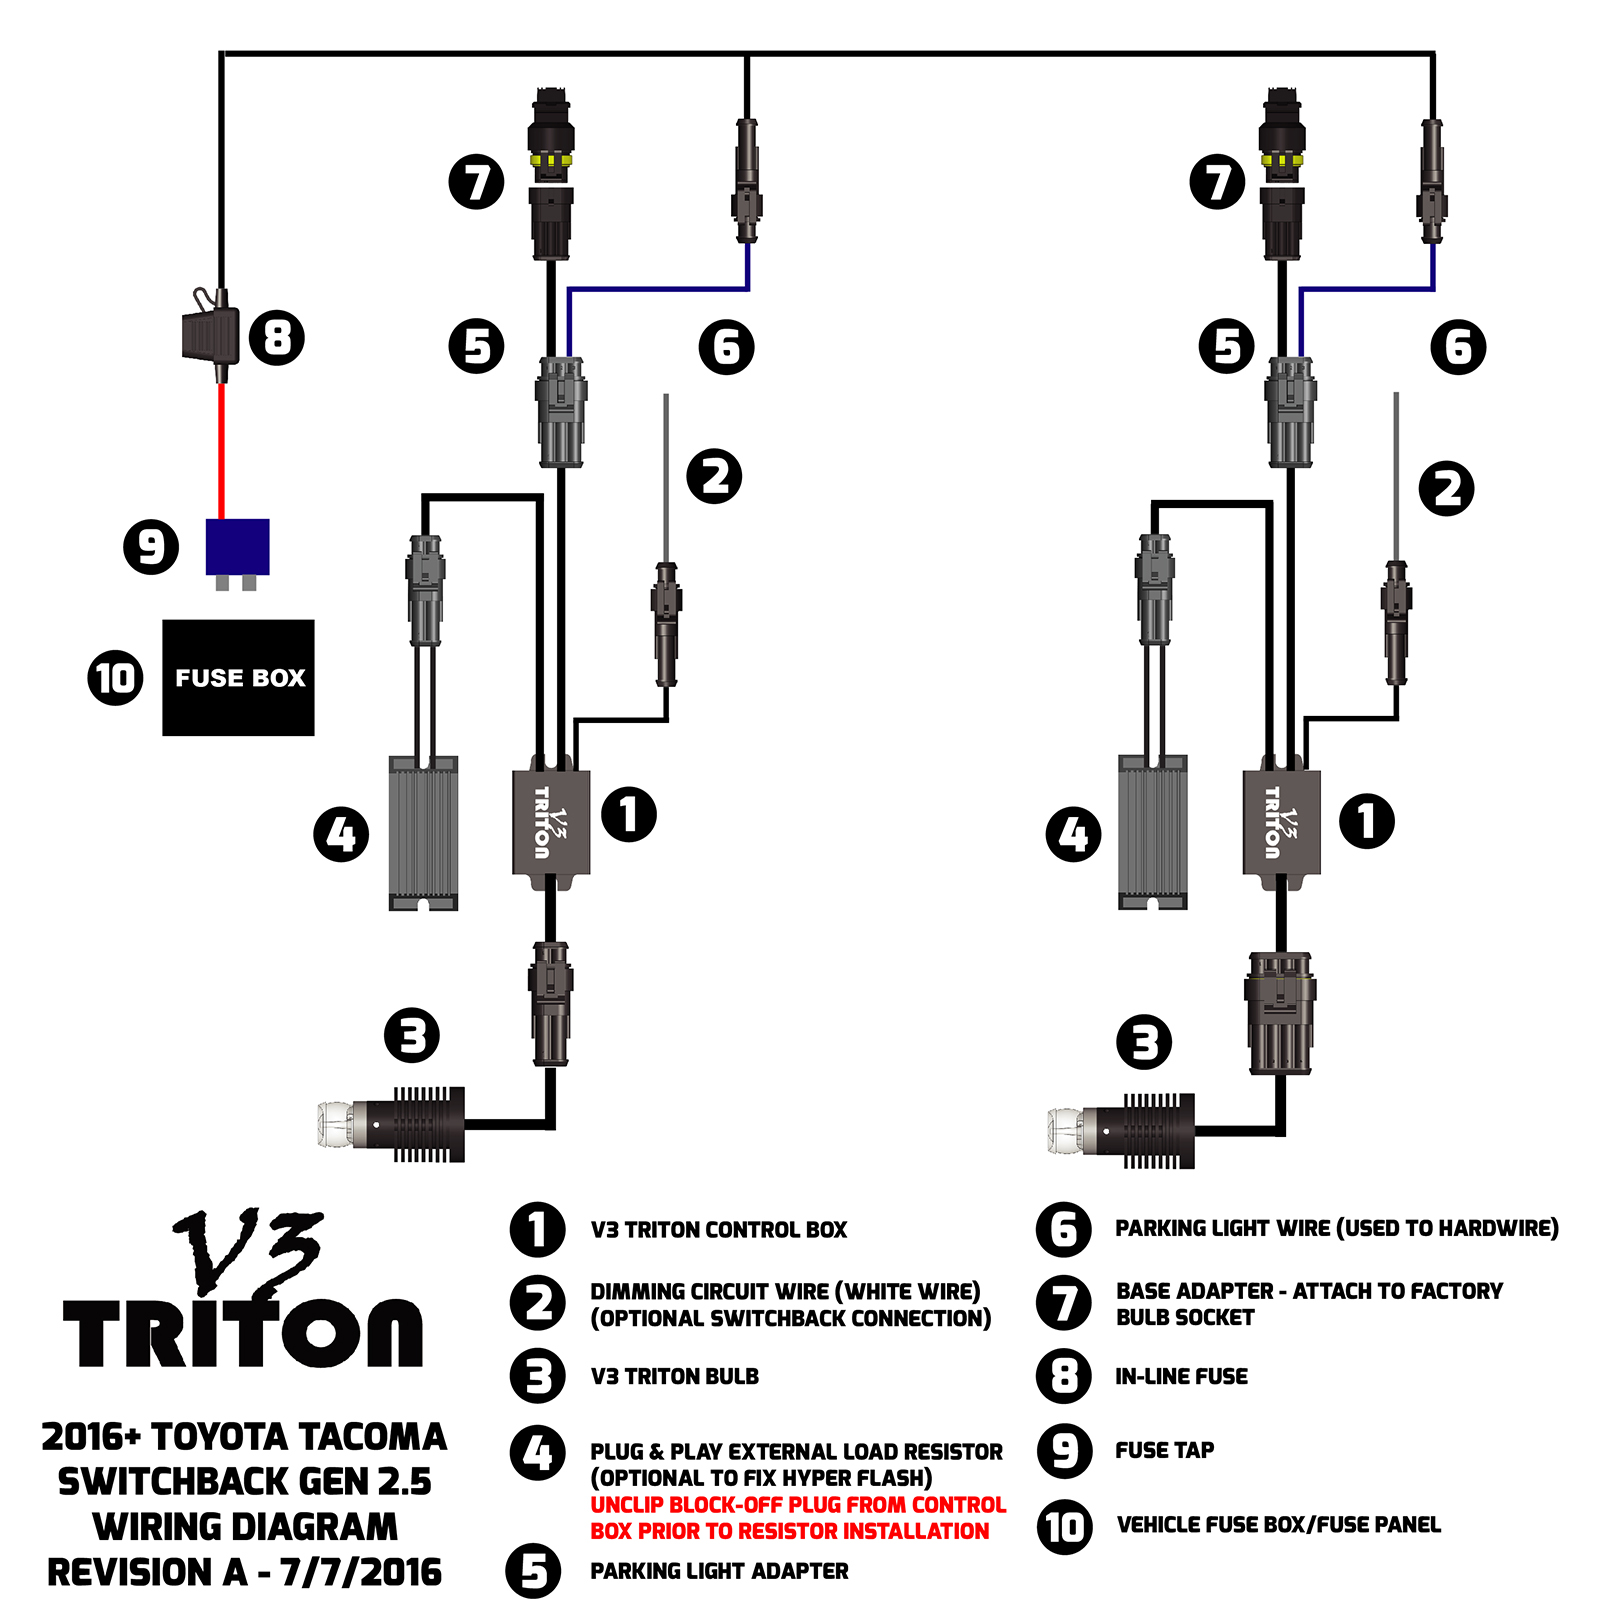 V3_Gen_2.5_A_Tacoma wiring diagrams Toyota Wiring Diagrams Color Code at mifinder.co